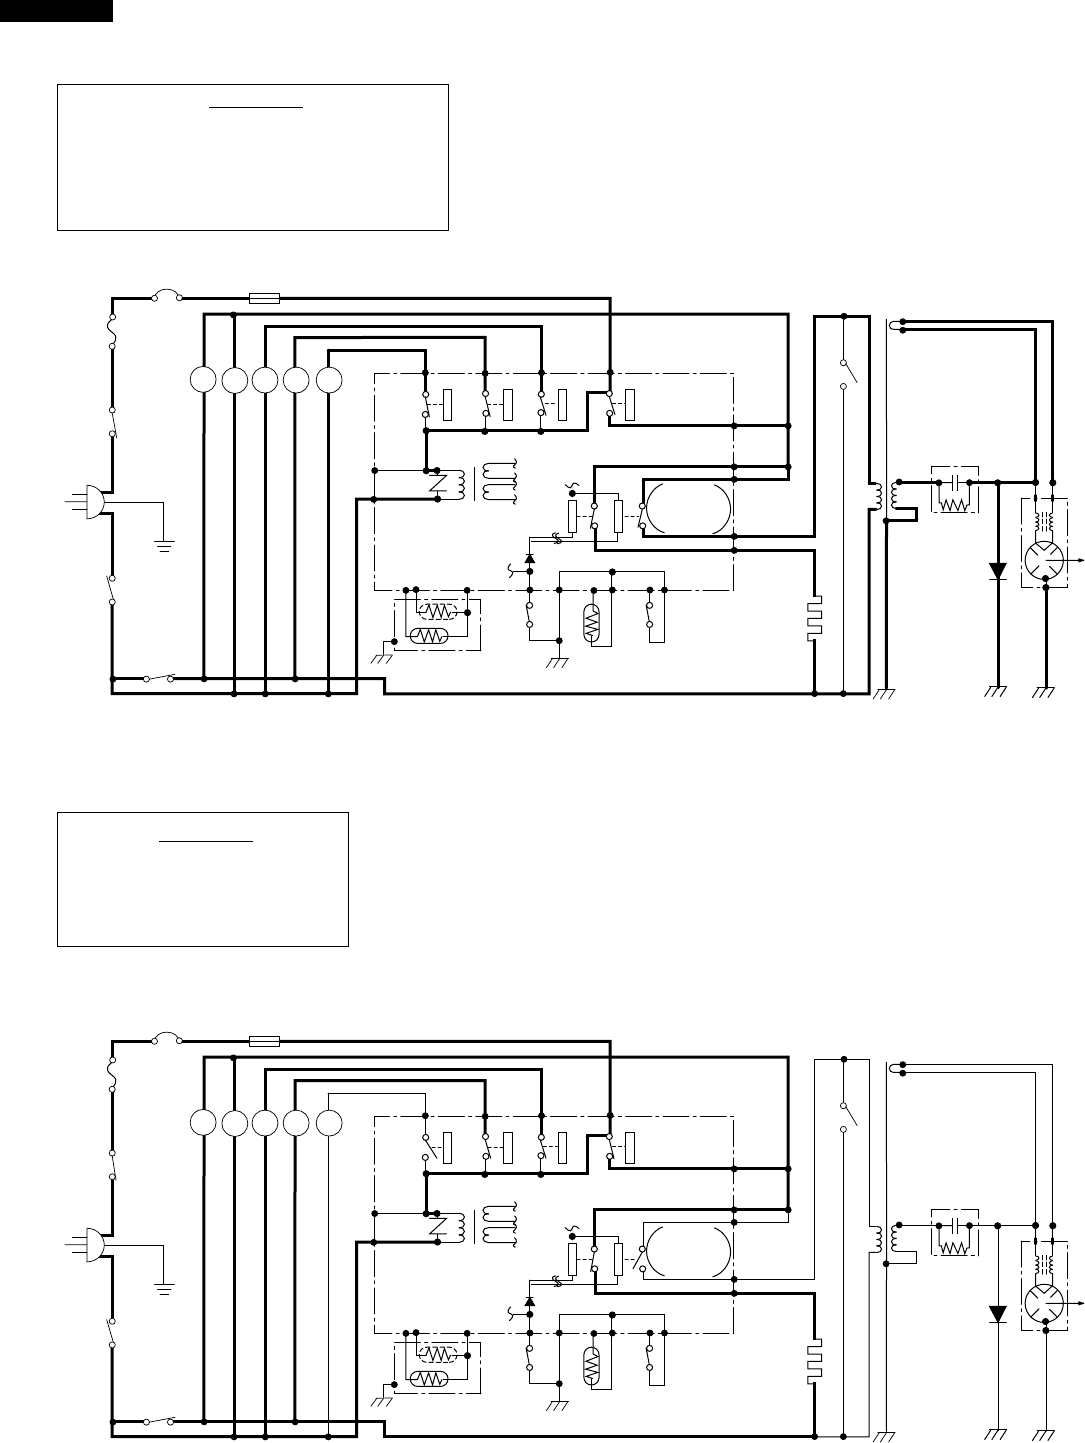 Sharp R-930AW Figure O-4. Oven Schematic-Convection